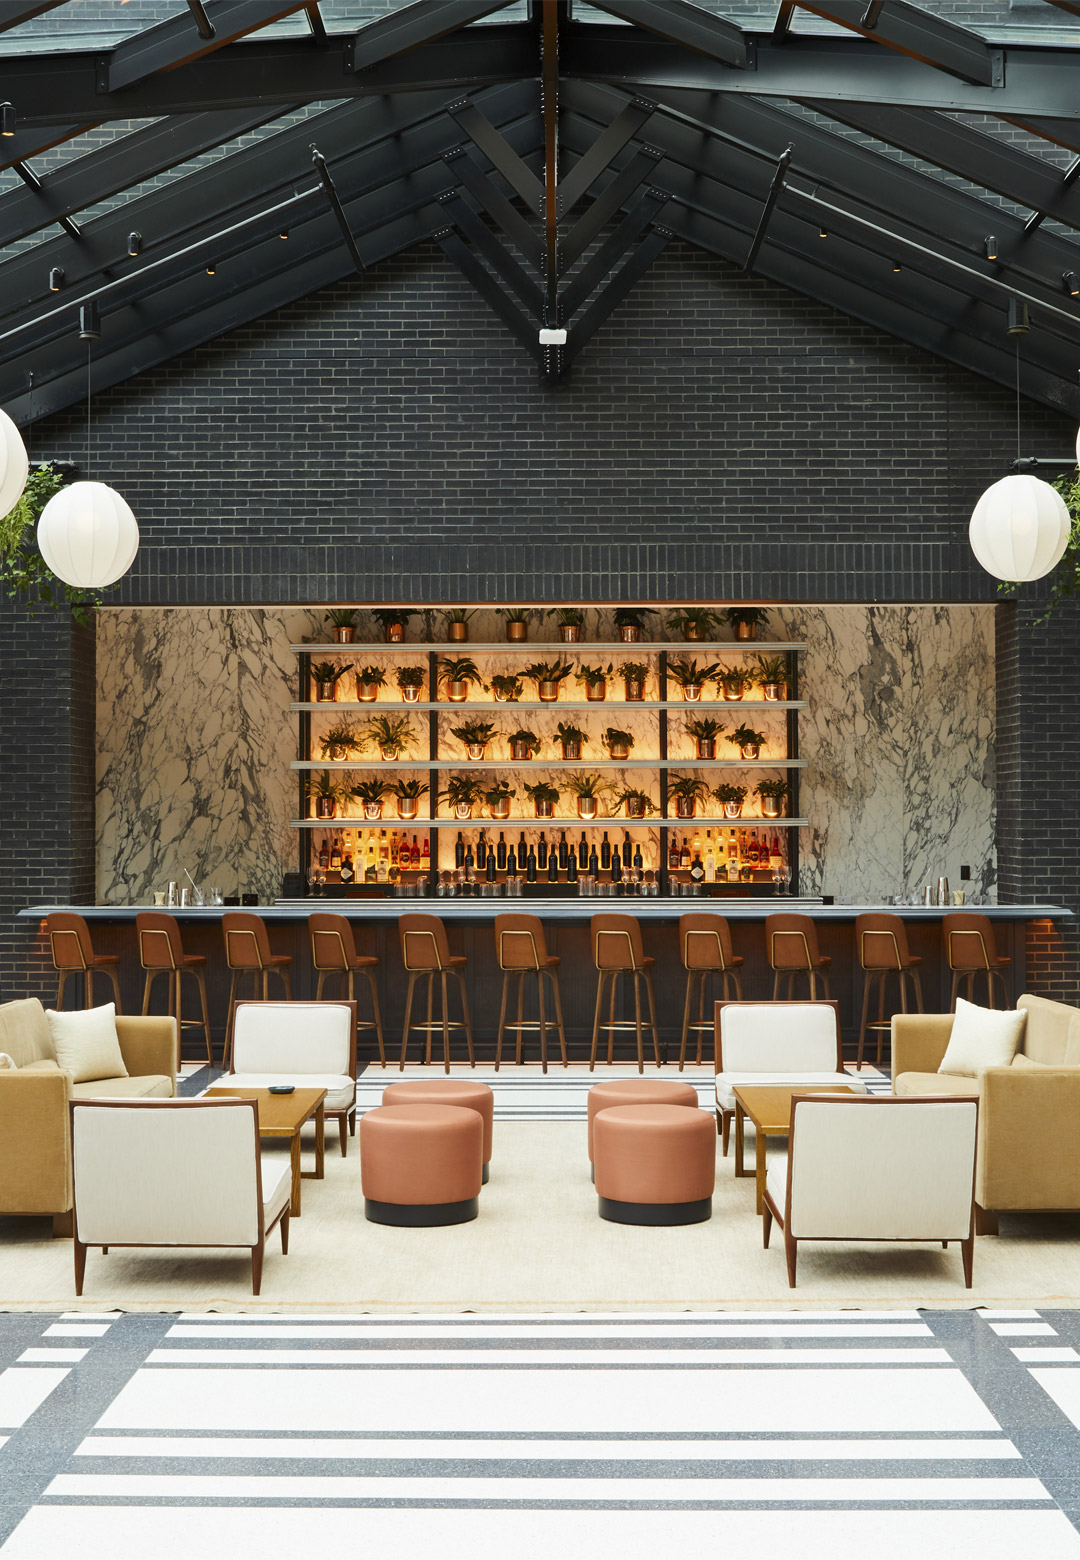 The annexe at the Shinola Hotel brings together the historic Singer Building and the T.B. Rayl Co store| Shinola Hotel| Gachot Studio | STIR